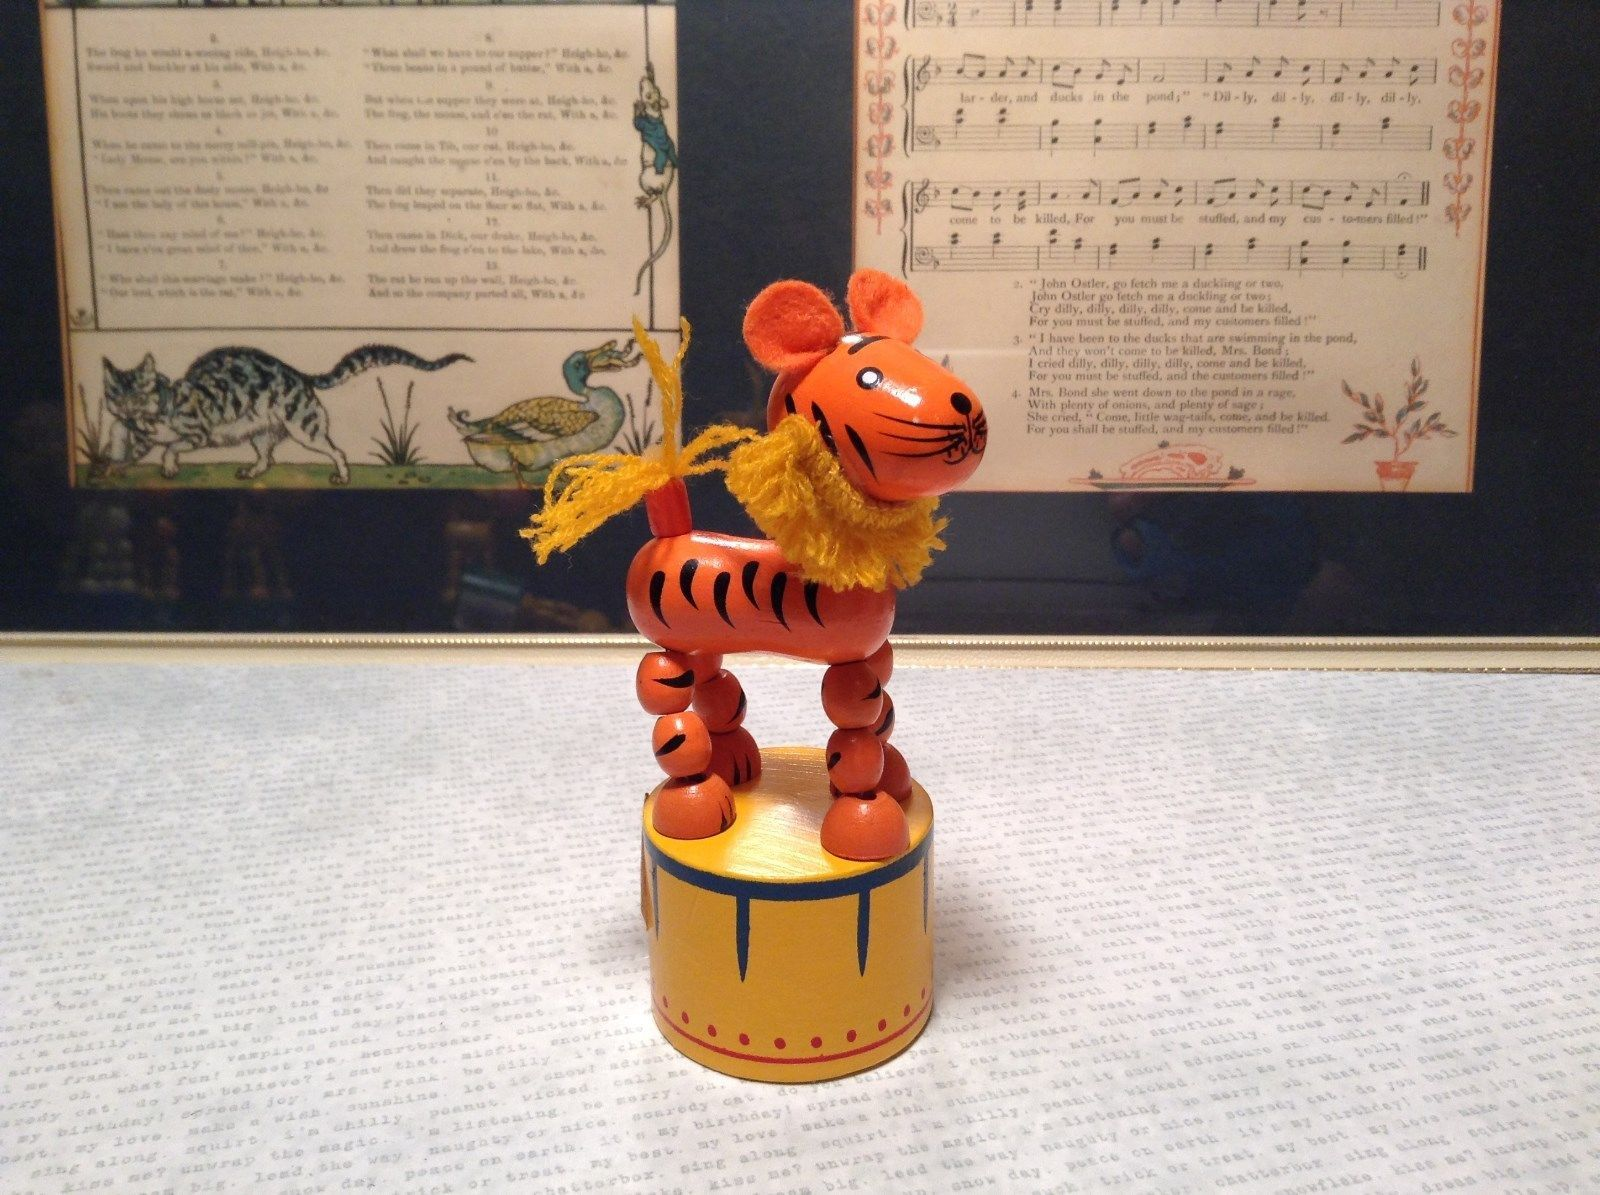 String Tiger Toy Small Childrens Wooden Push Bottom Action Figure Yellow Base